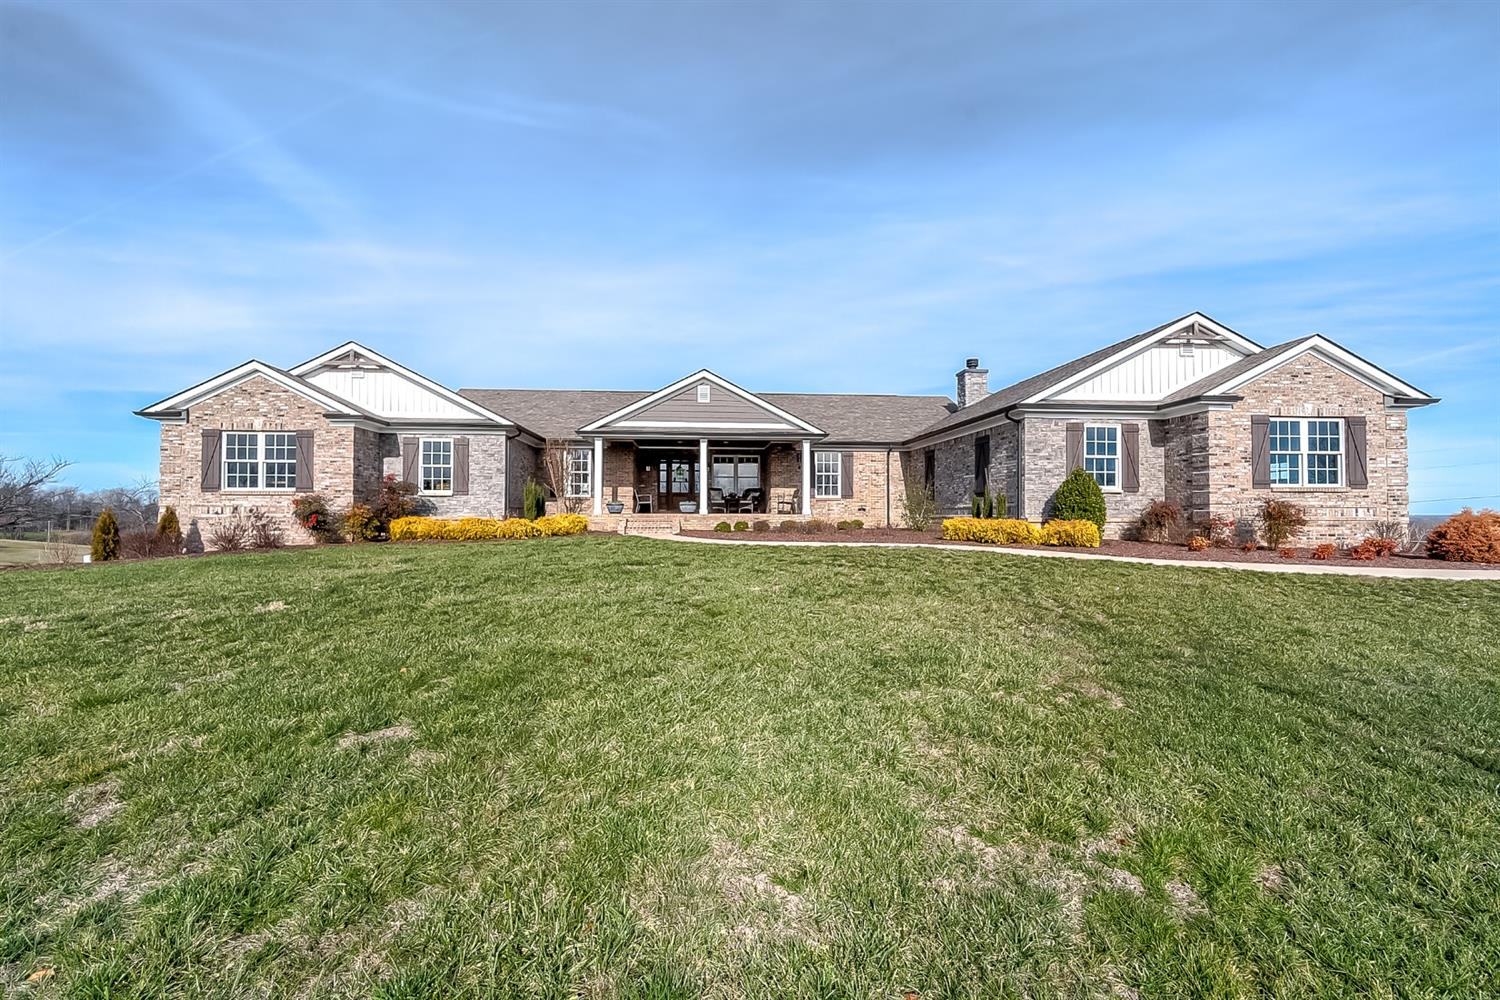 2250 Handys Bend Rd, Wilmore, KY 40390